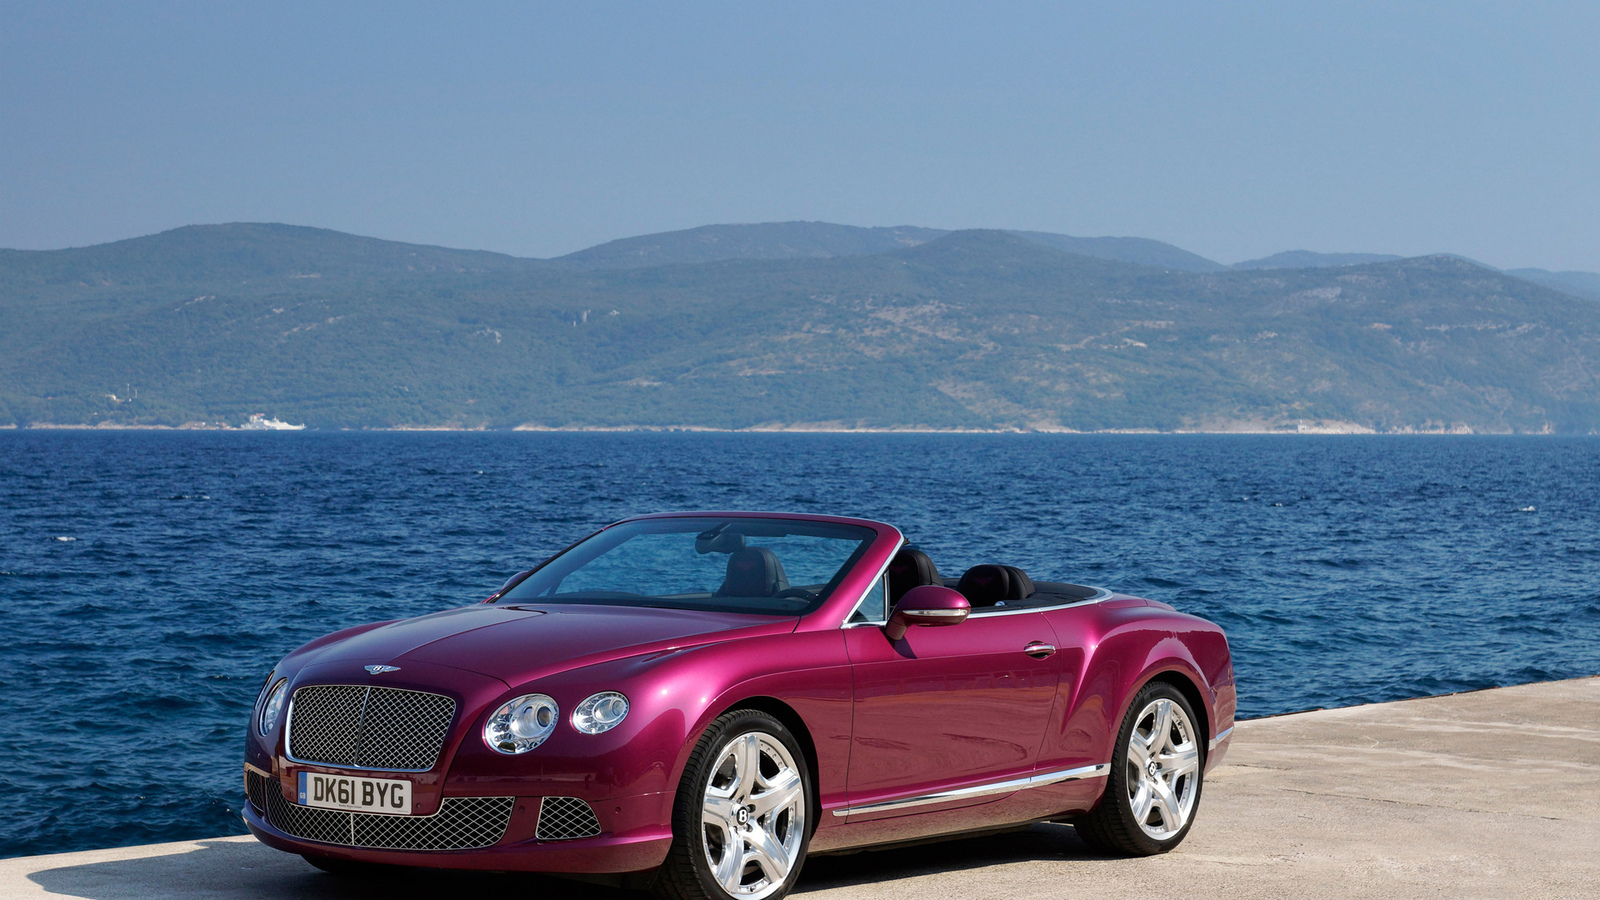 water, 2012 bentley continental gtc, nature, mountains, природа, вода, море, машина, горы, 3000x1977, car, небо, sky, sea